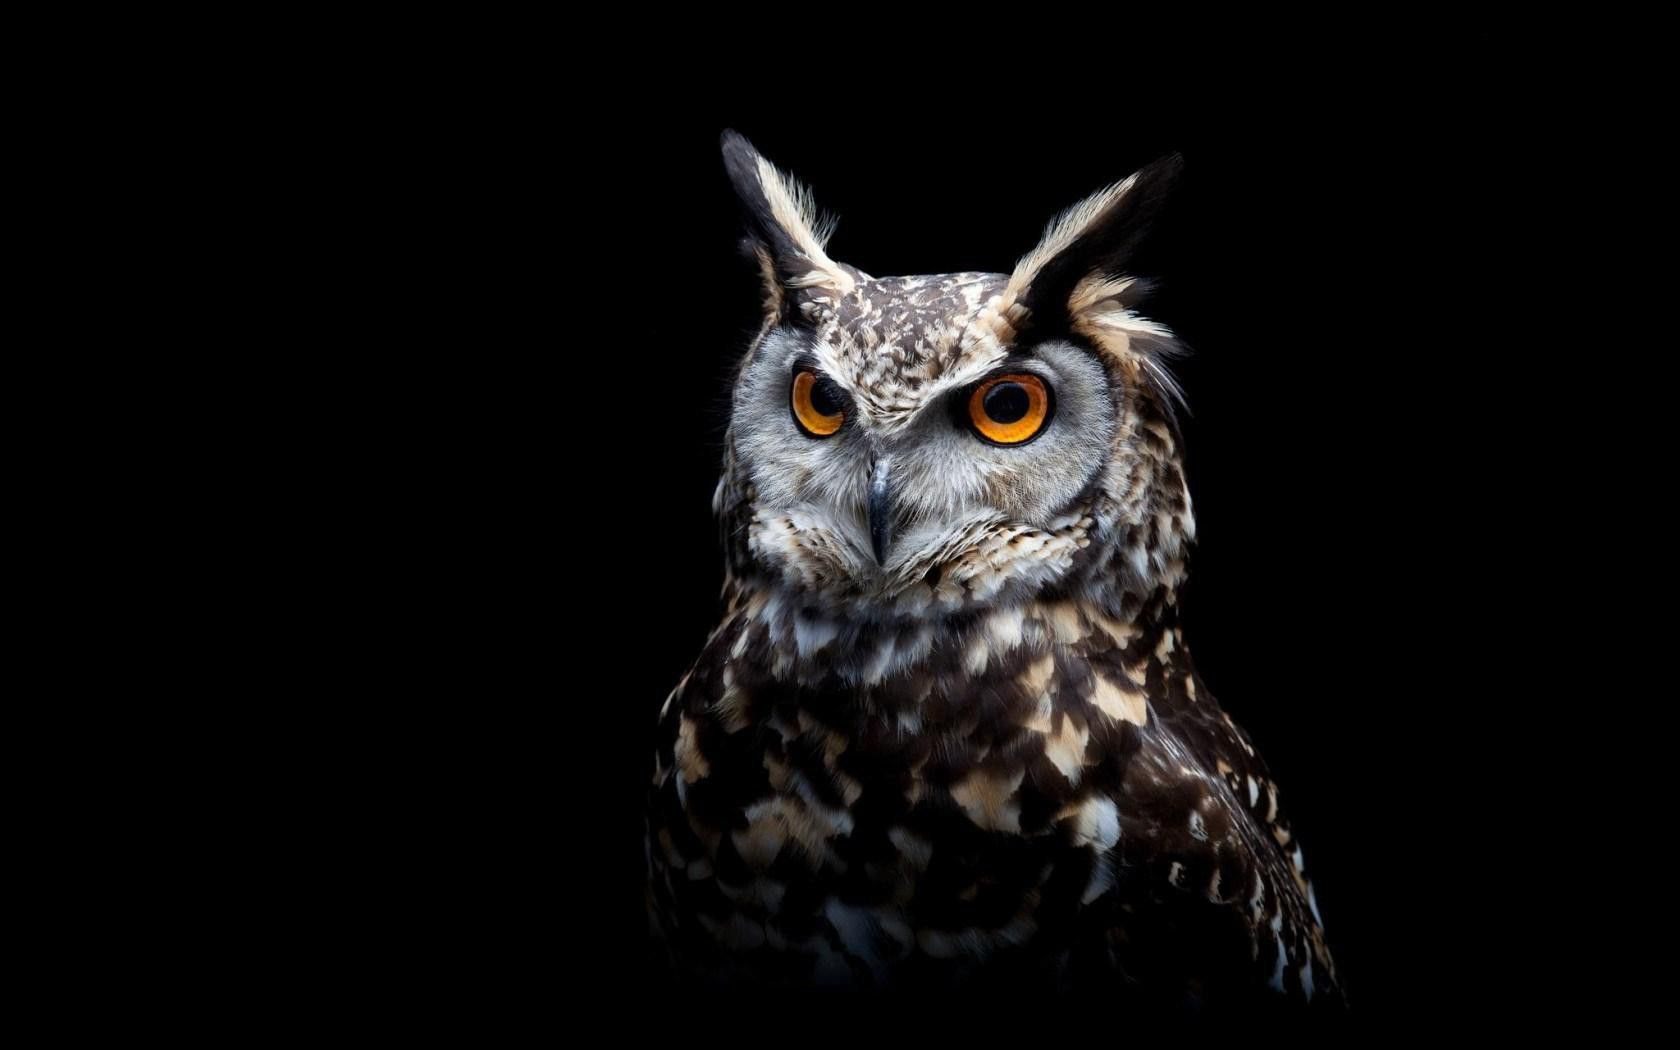 owl images free